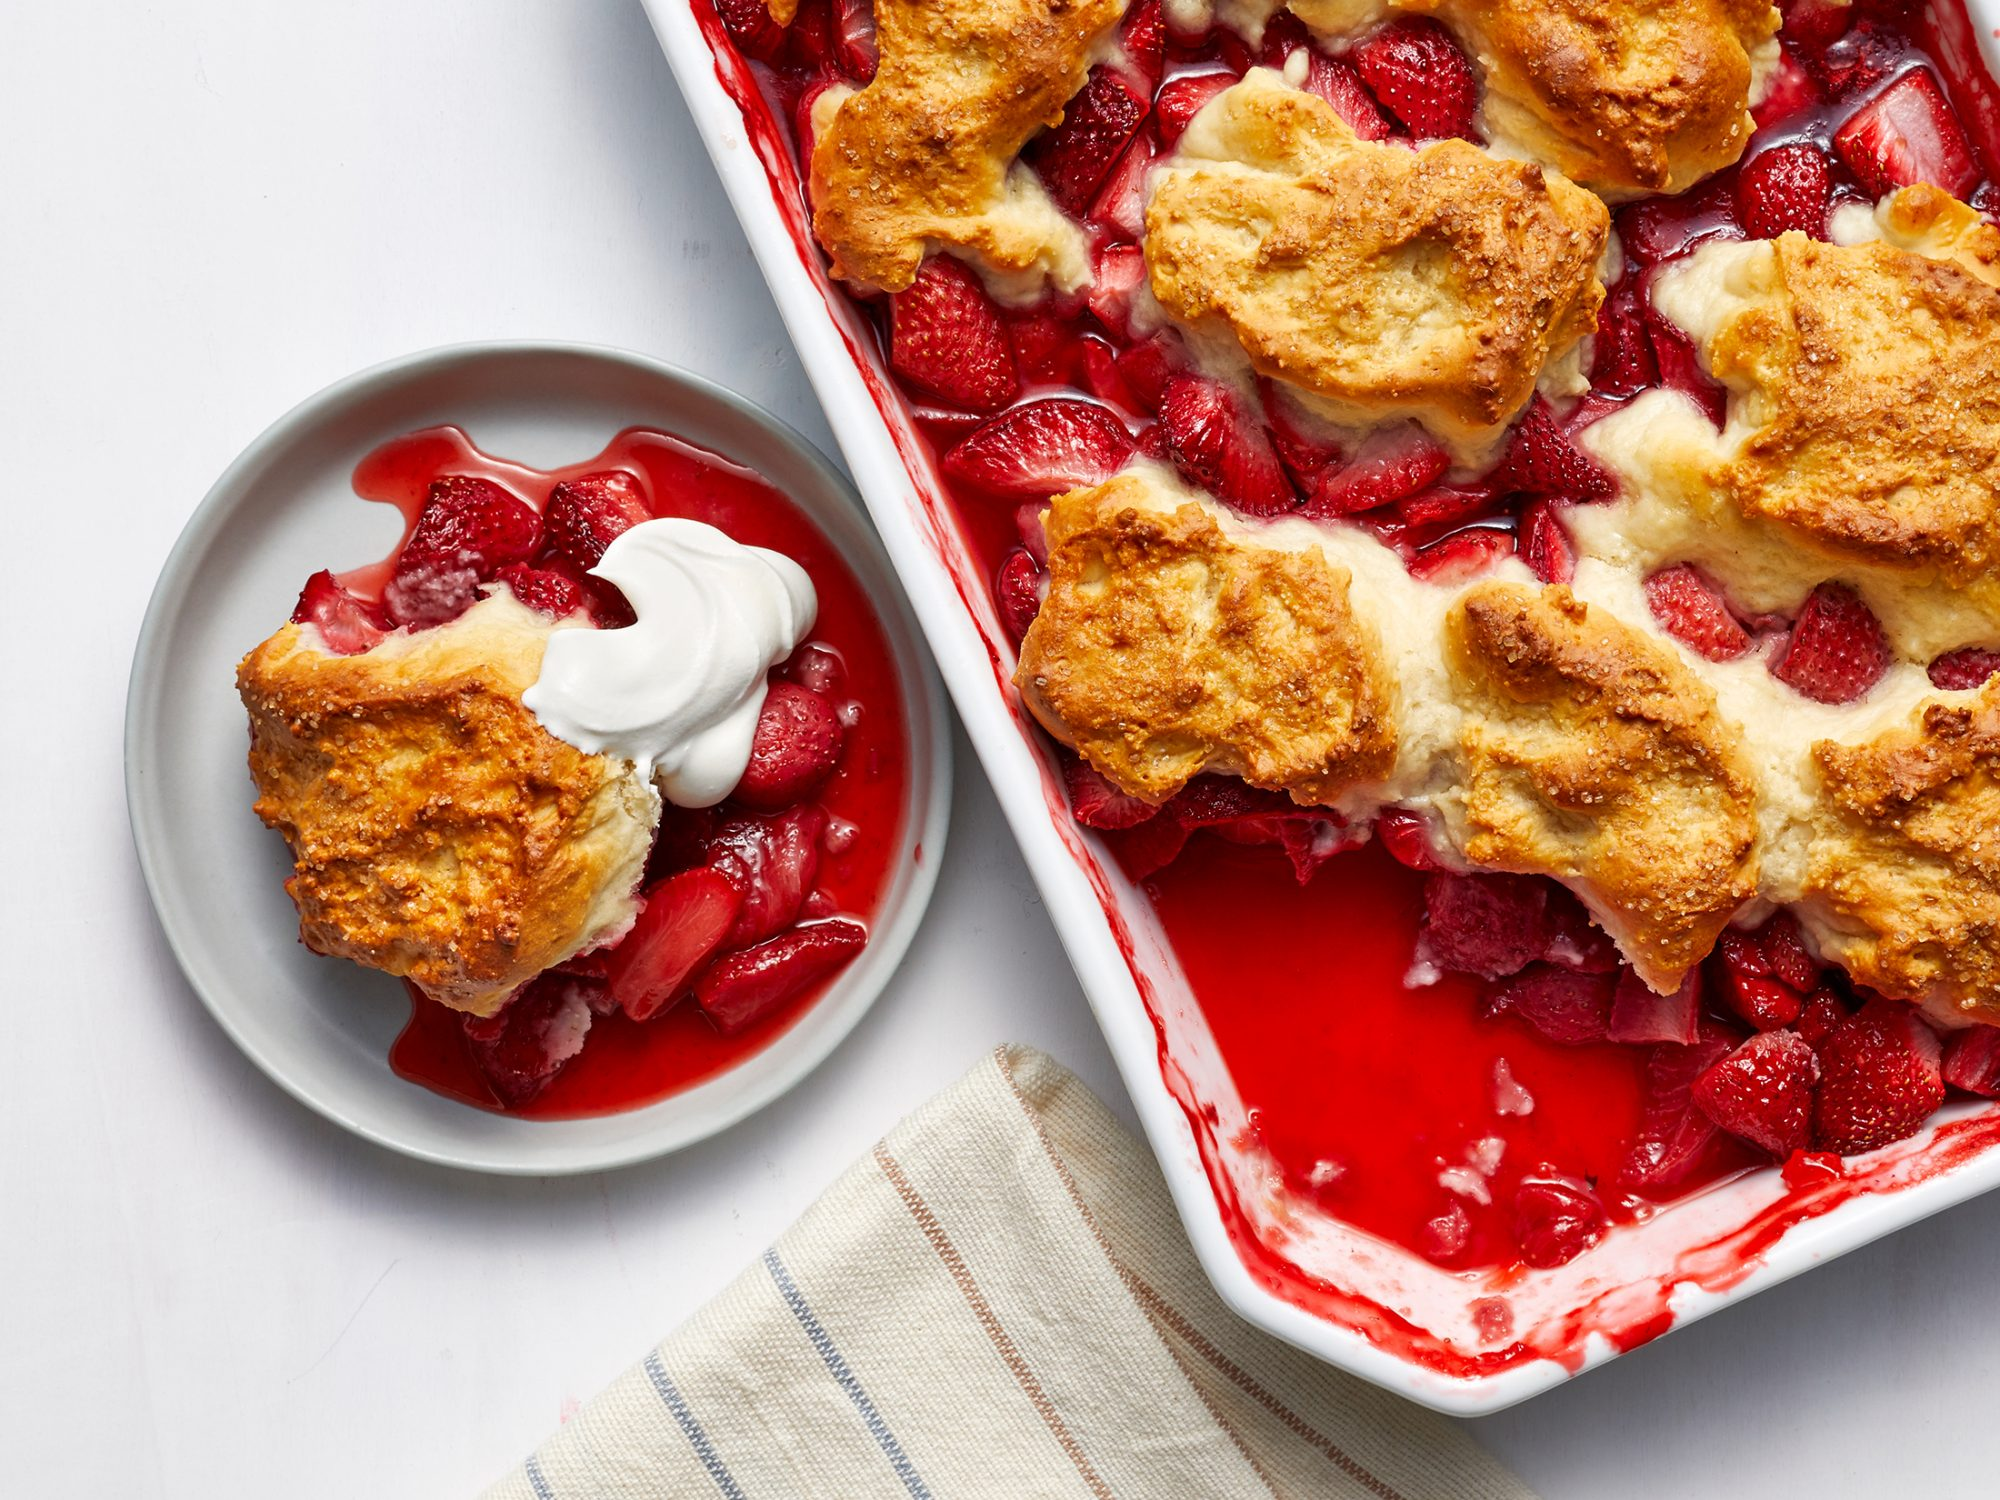 50 Strawberry Recipes You Should Have In Your Spring Playbook